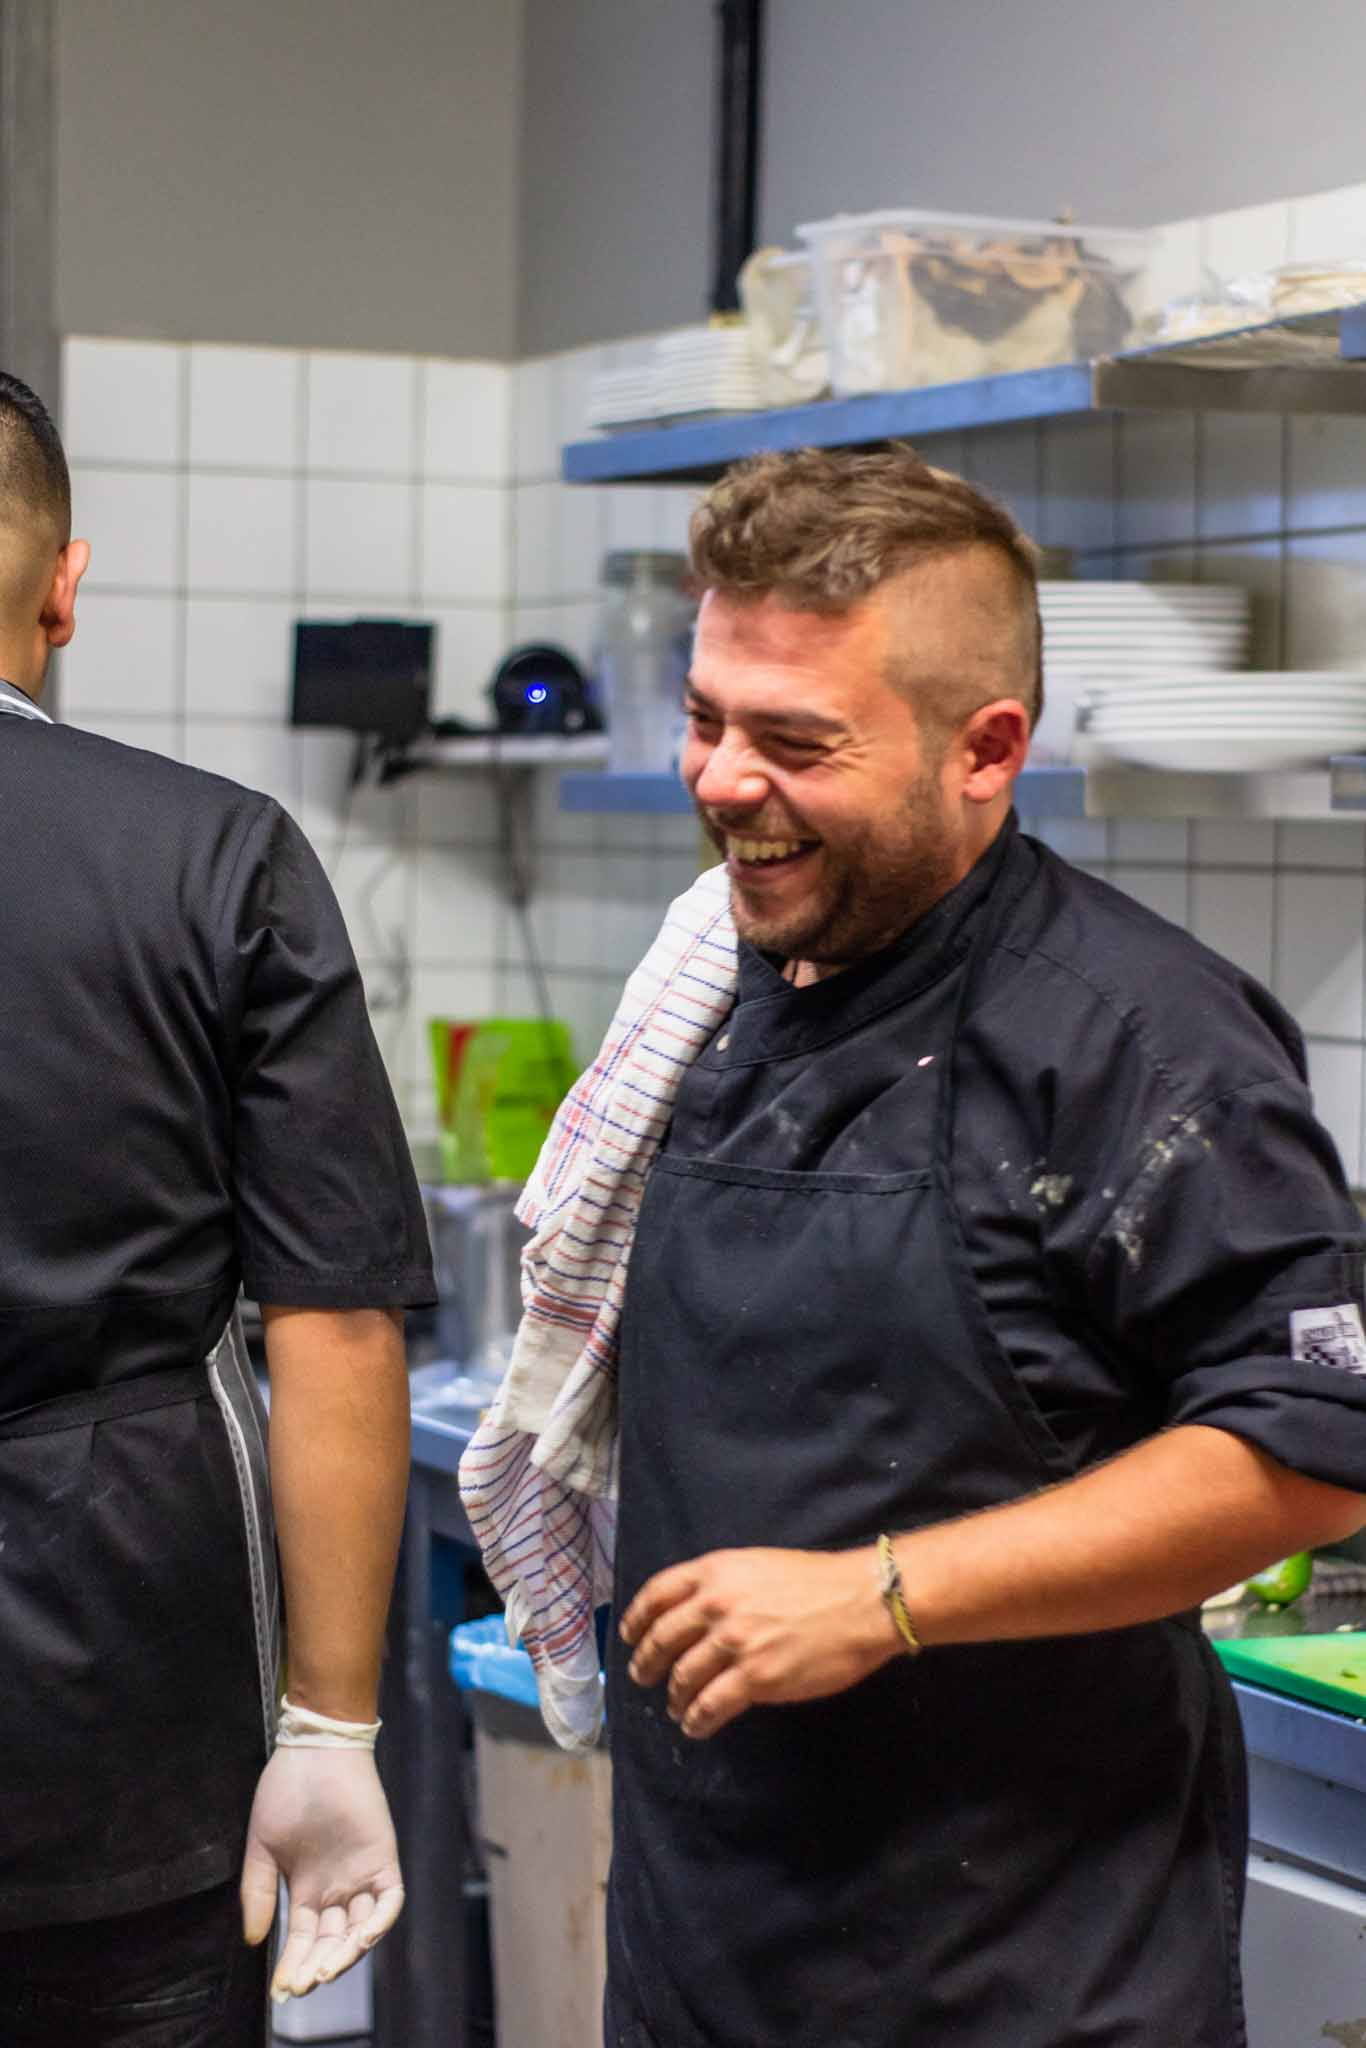 Two chefs in a Mexican restaurant sharing smiles